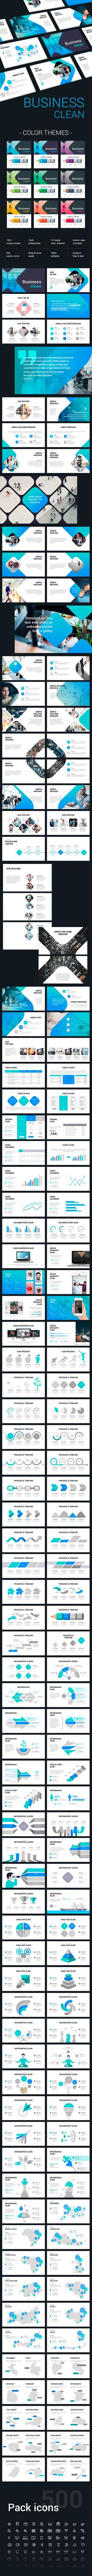 Business Clean Powerpoint Professional - Business PowerPoint Templates  Download link: https://graphicriver.net/item/business-clean-powerpoint-professional/22141323?ref=KlitVogli